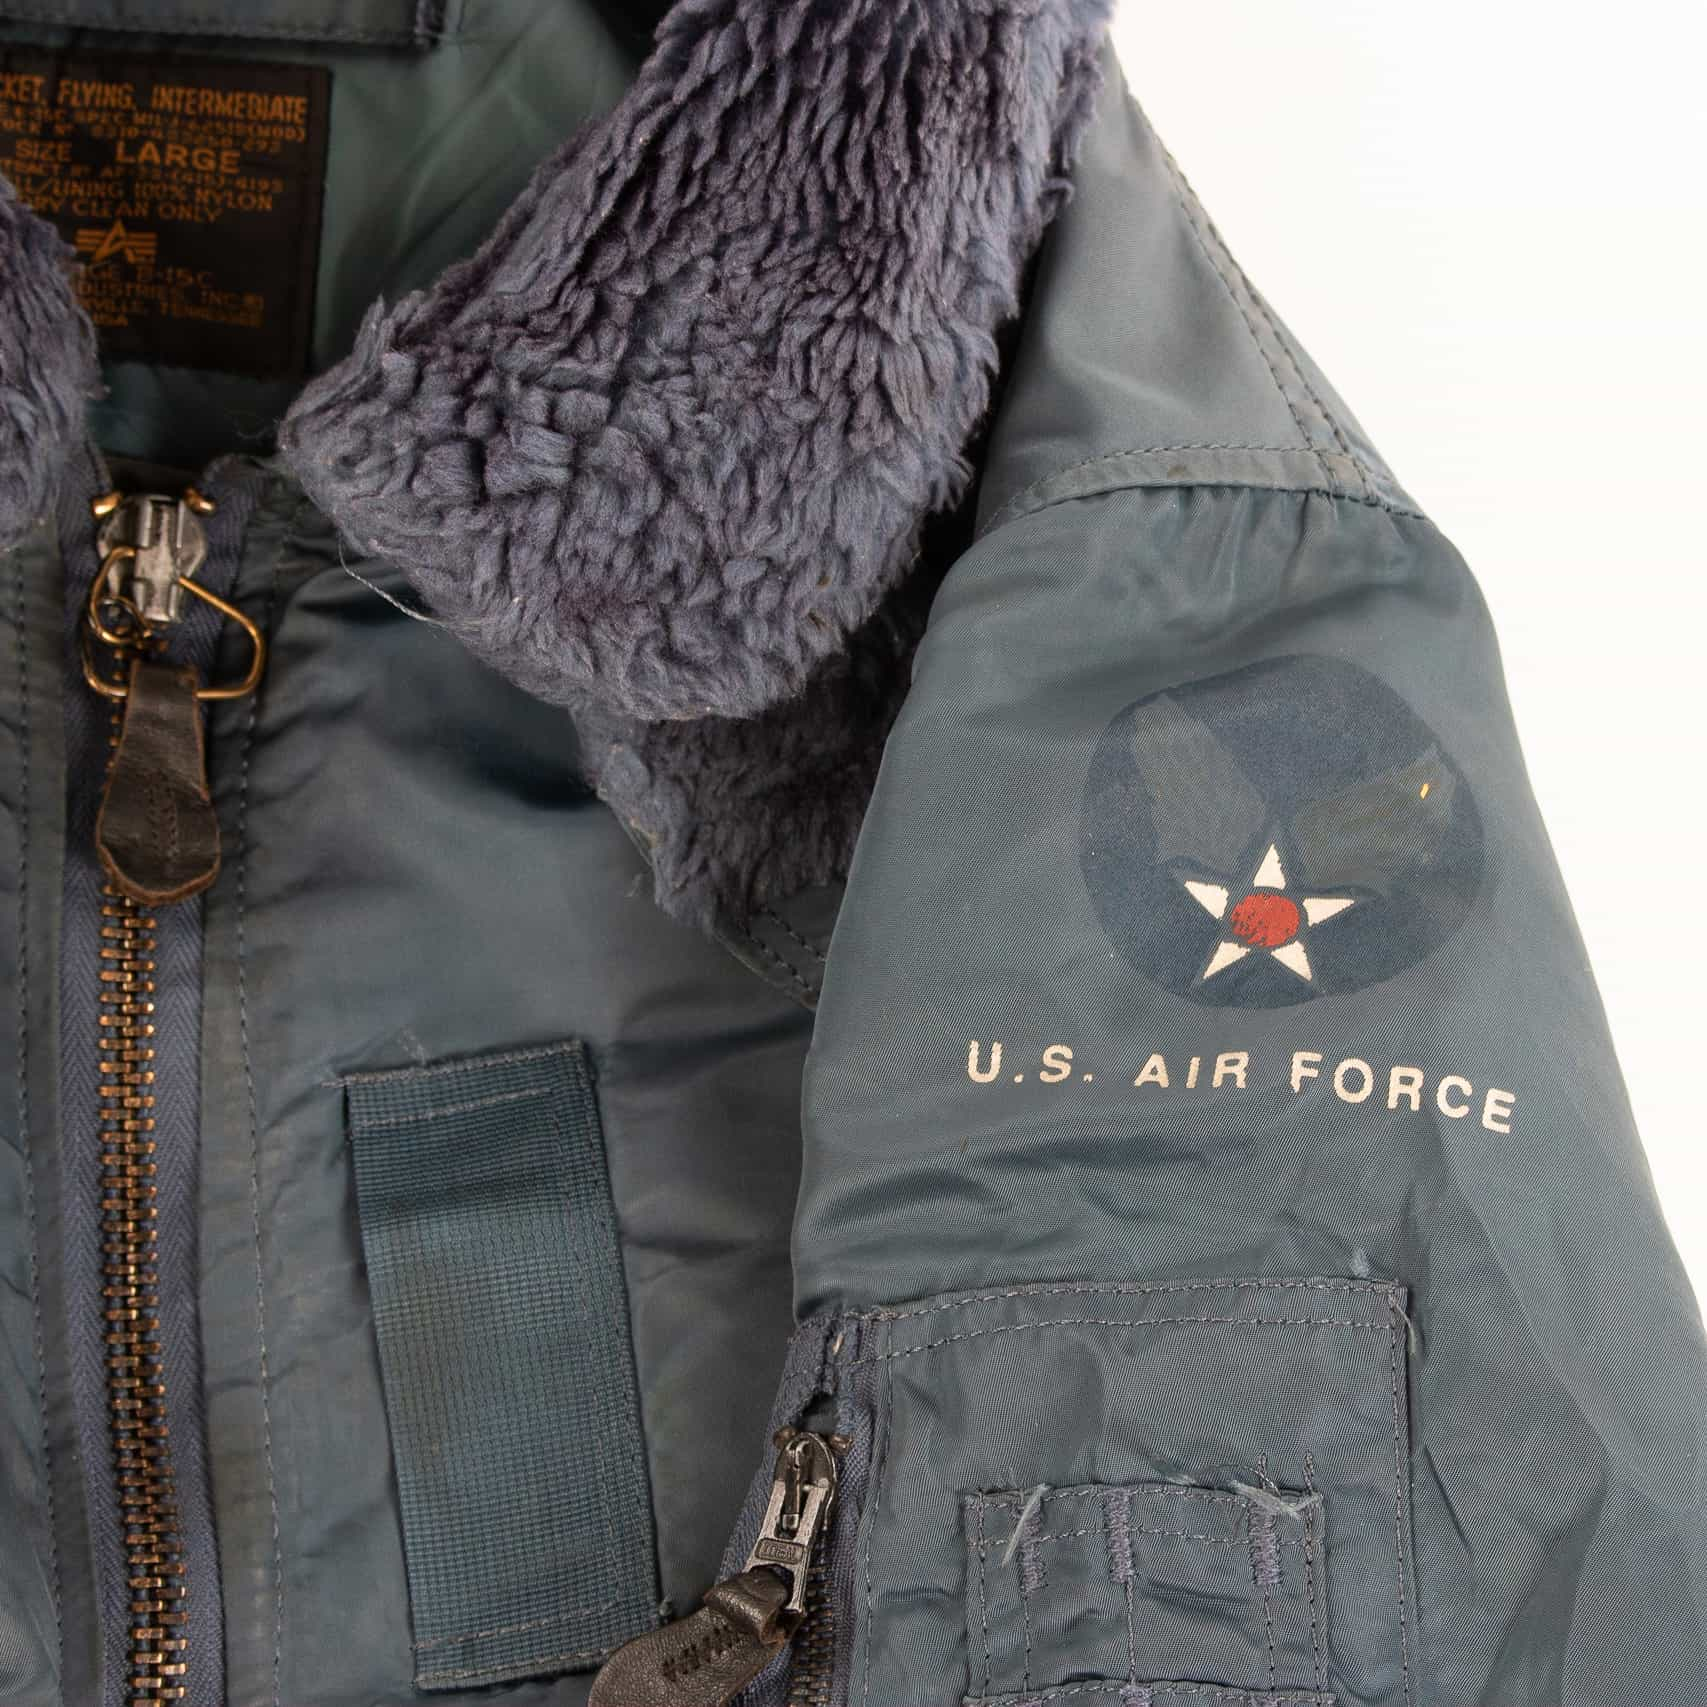 designer fashion 48011 7949b Vintage Alpha Industries U.S Air Force 'Wings of Victory' MA ...